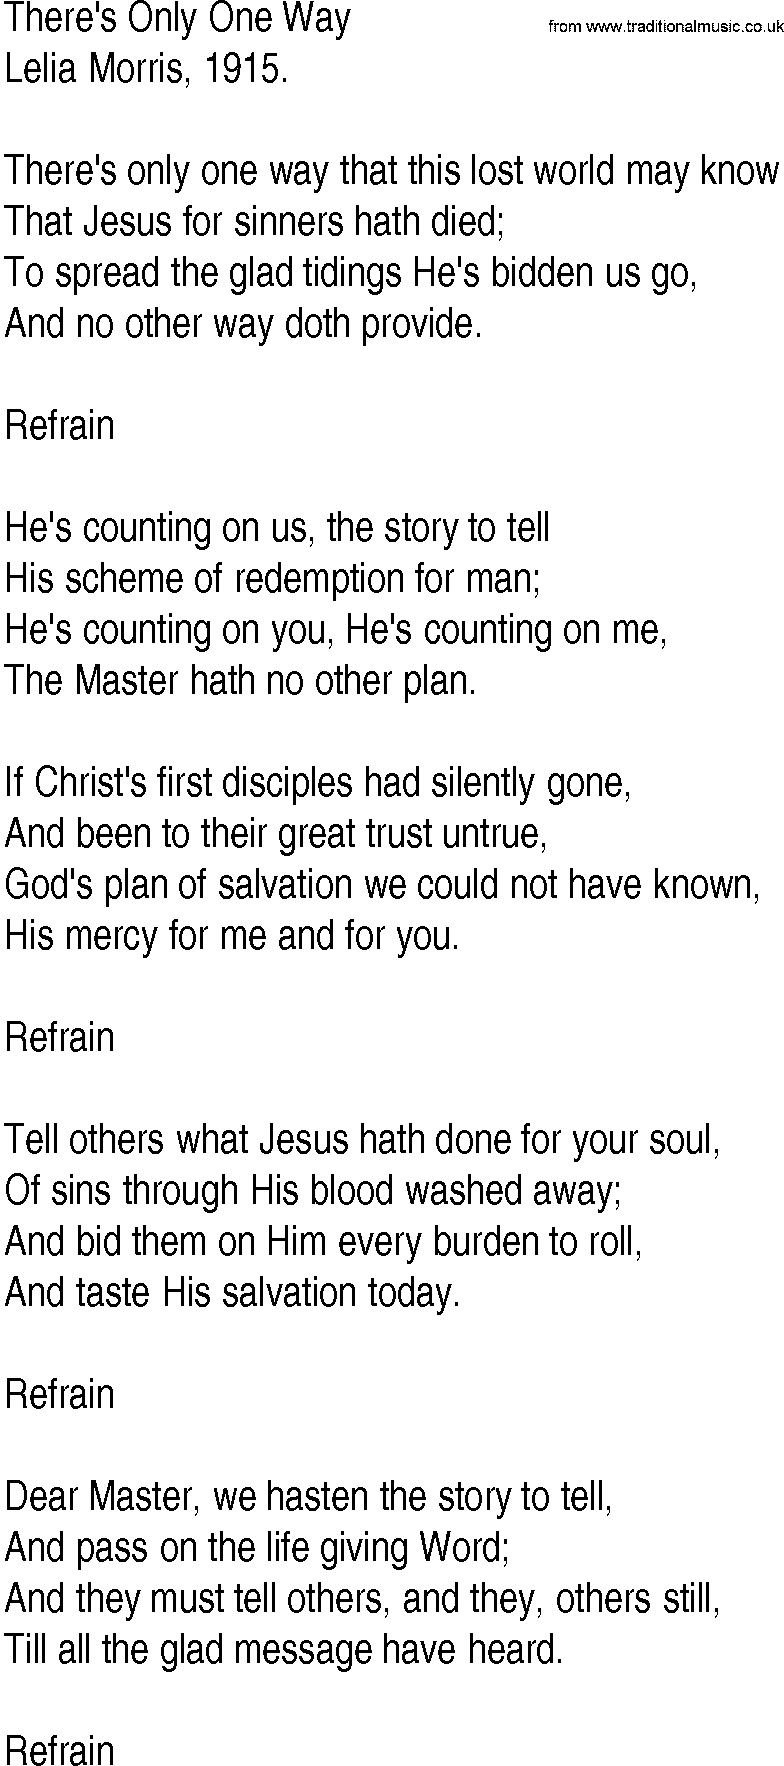 Hymn And Gospel Song Theres Only One Way By Lelia Morris Lyrics